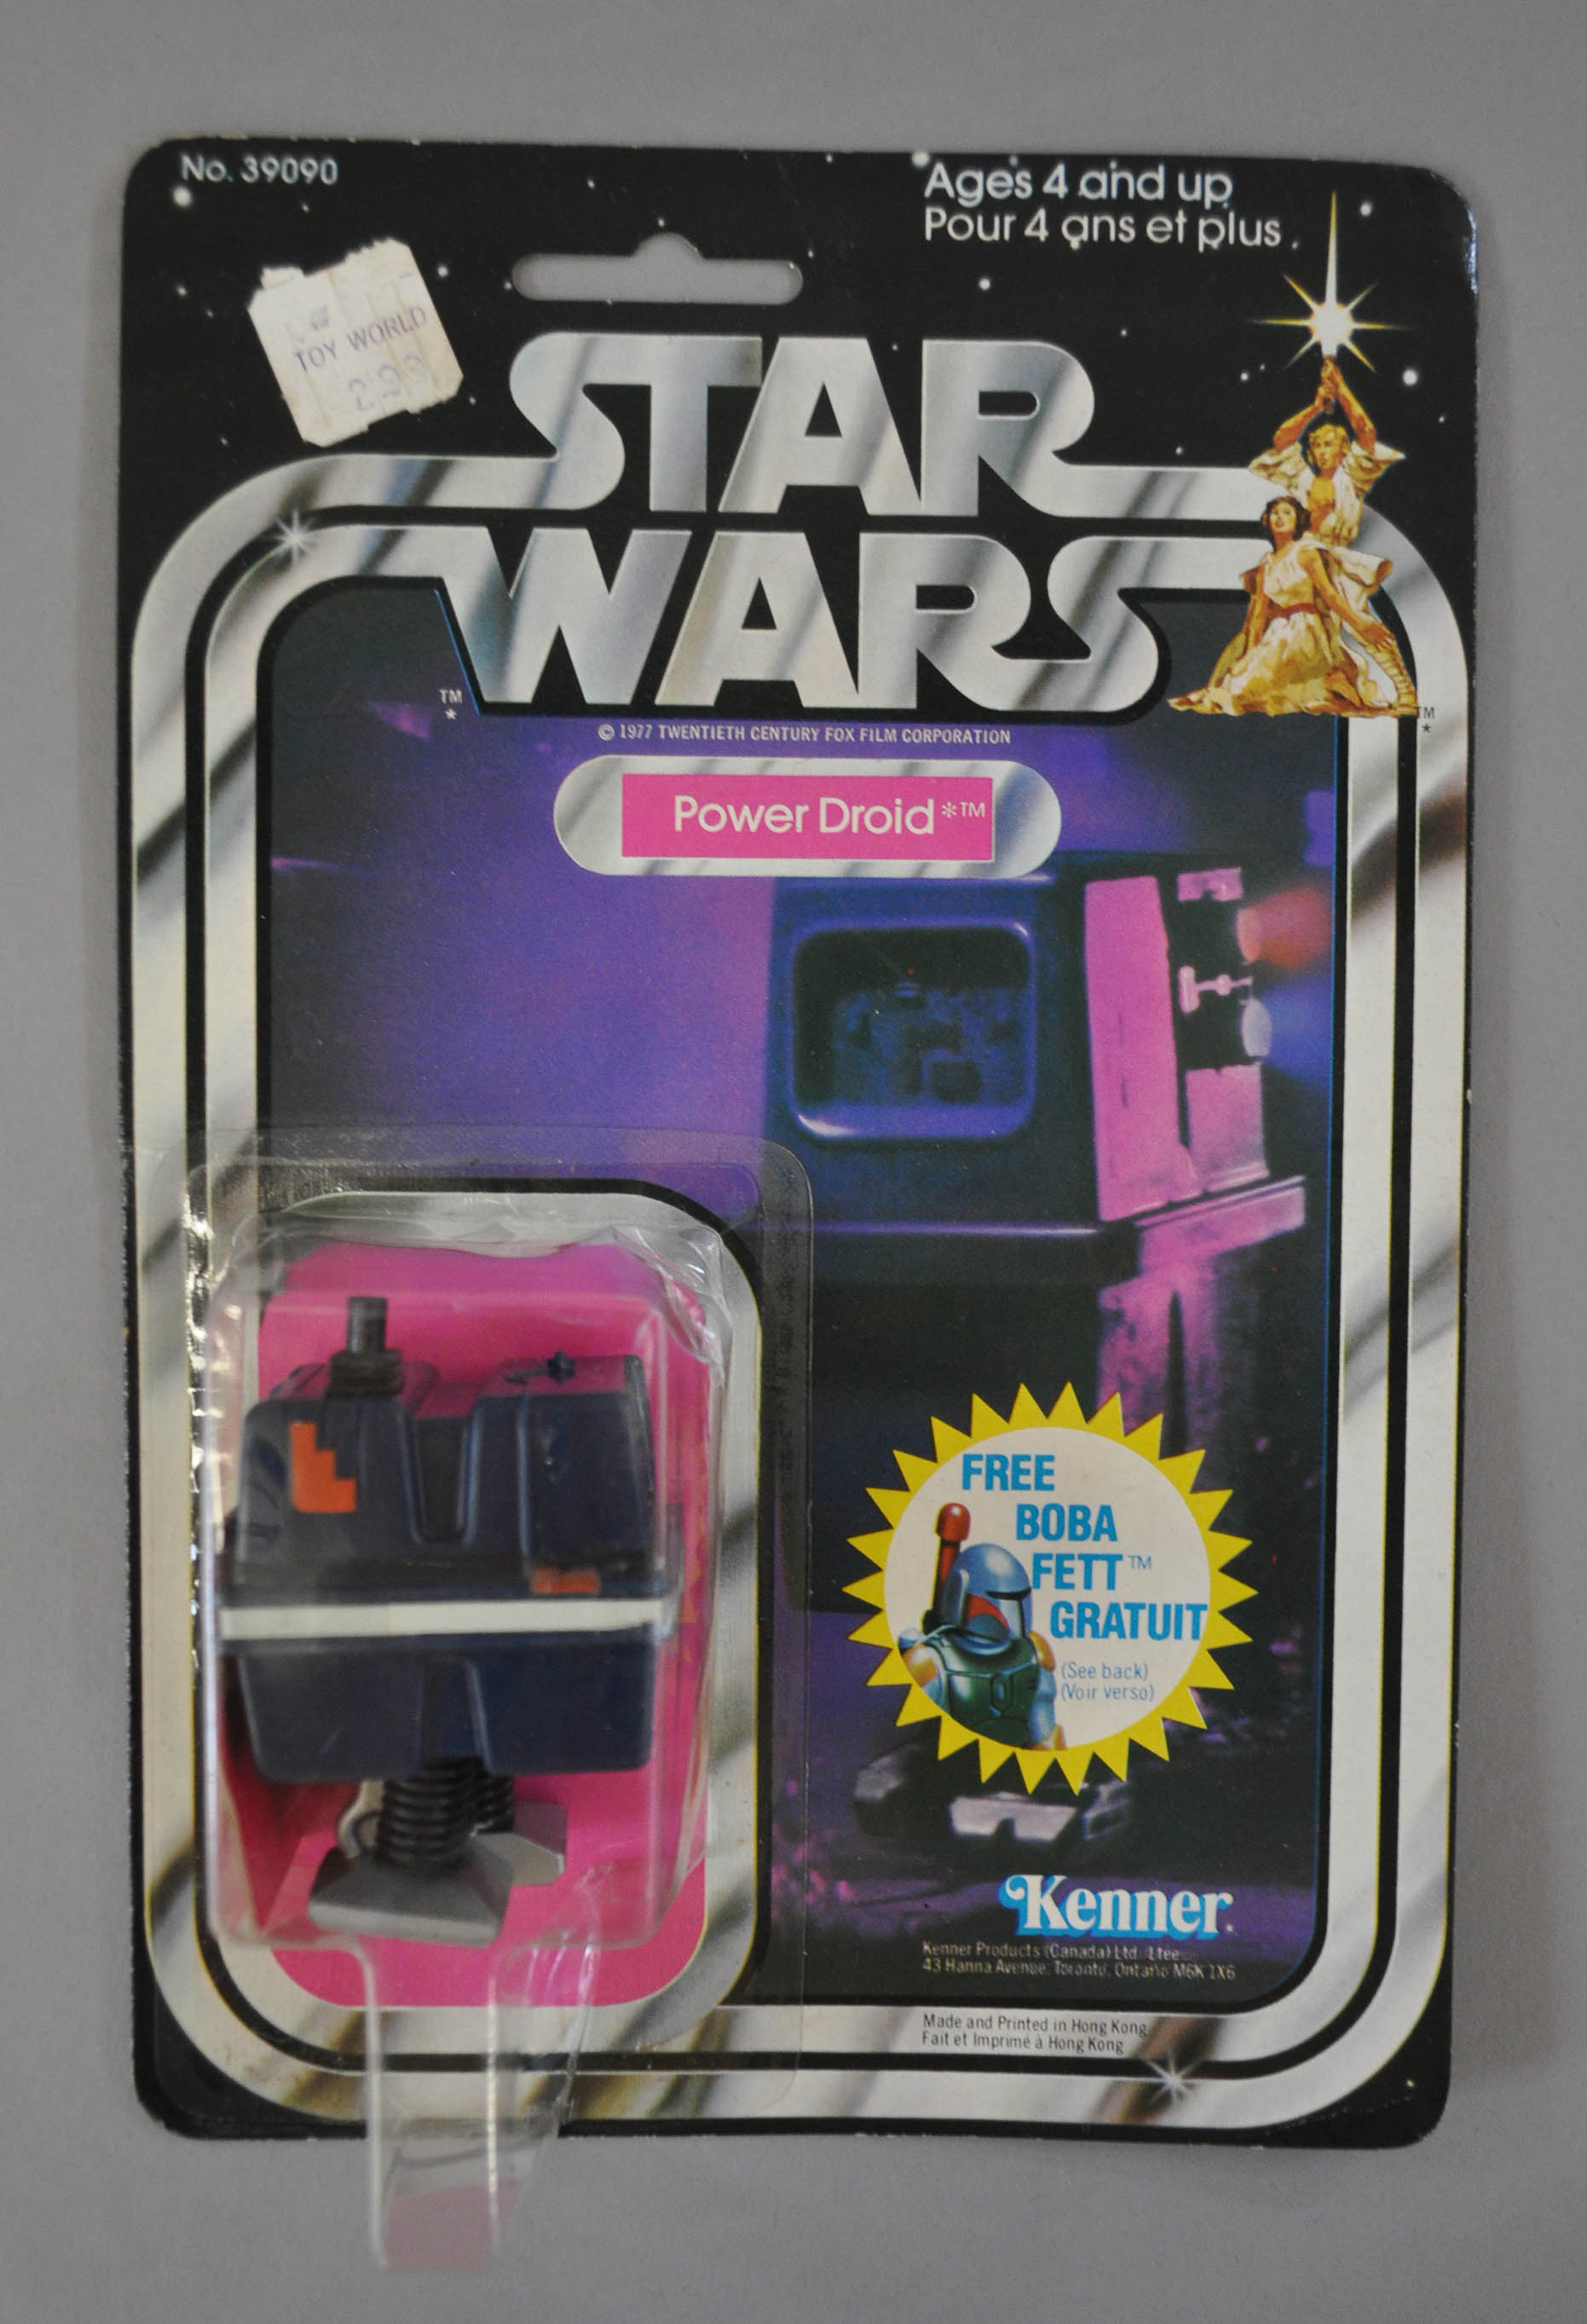 Car Lots In Kenner >> Kenner Star Wars Power Droid, E, sealed on a G 20 back card, hole punched, bubble clear but crus